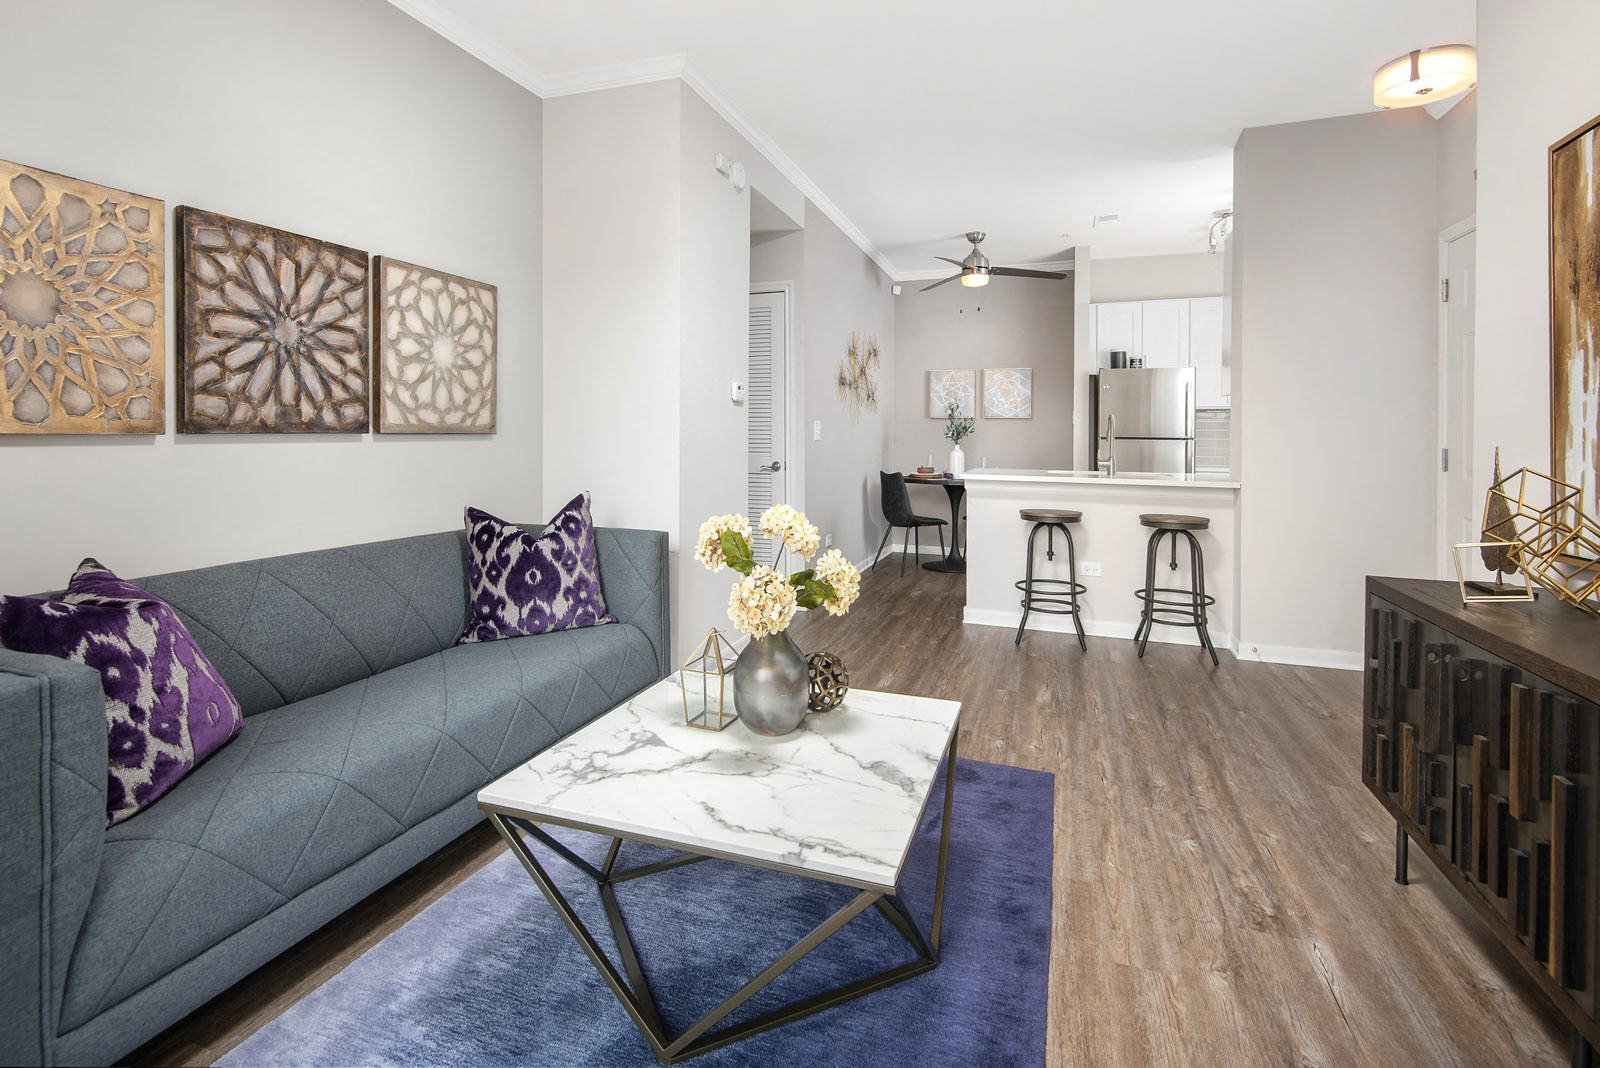 Open concept living area with sofa and coffee table